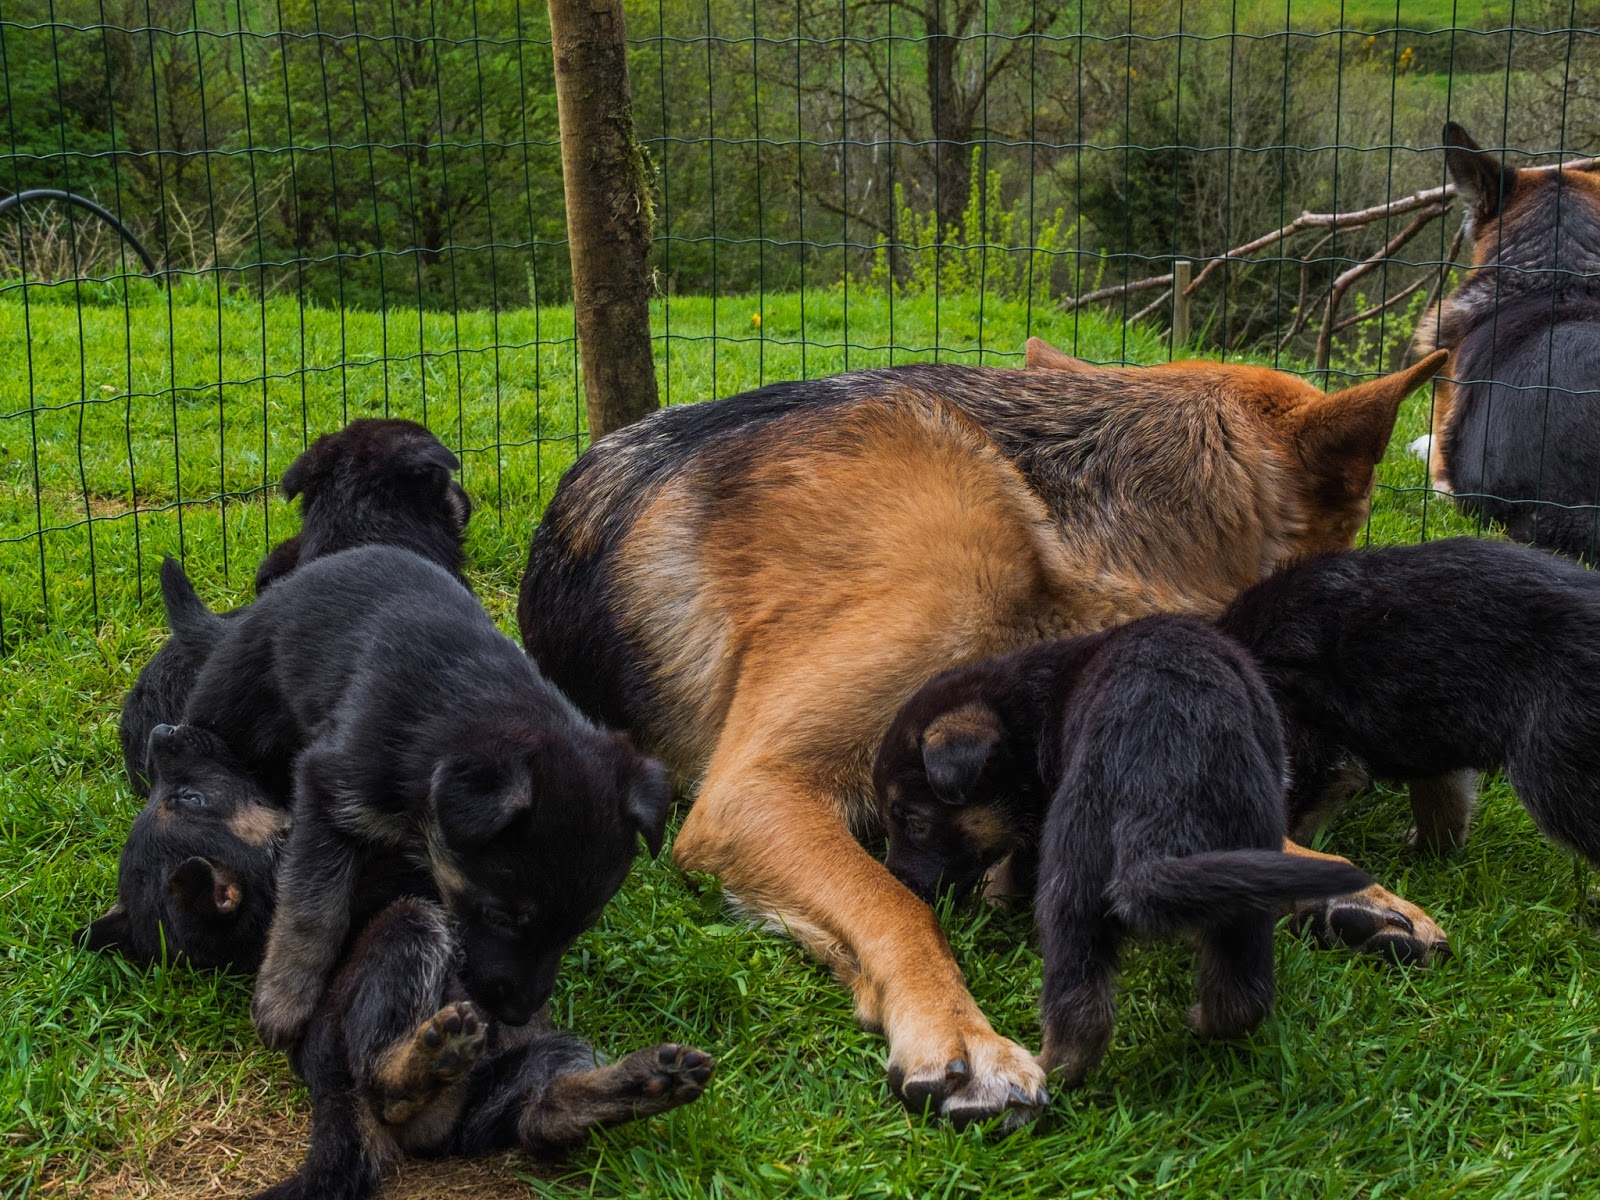 Month old German Shepherd puppies playing outside on the grass with mom.